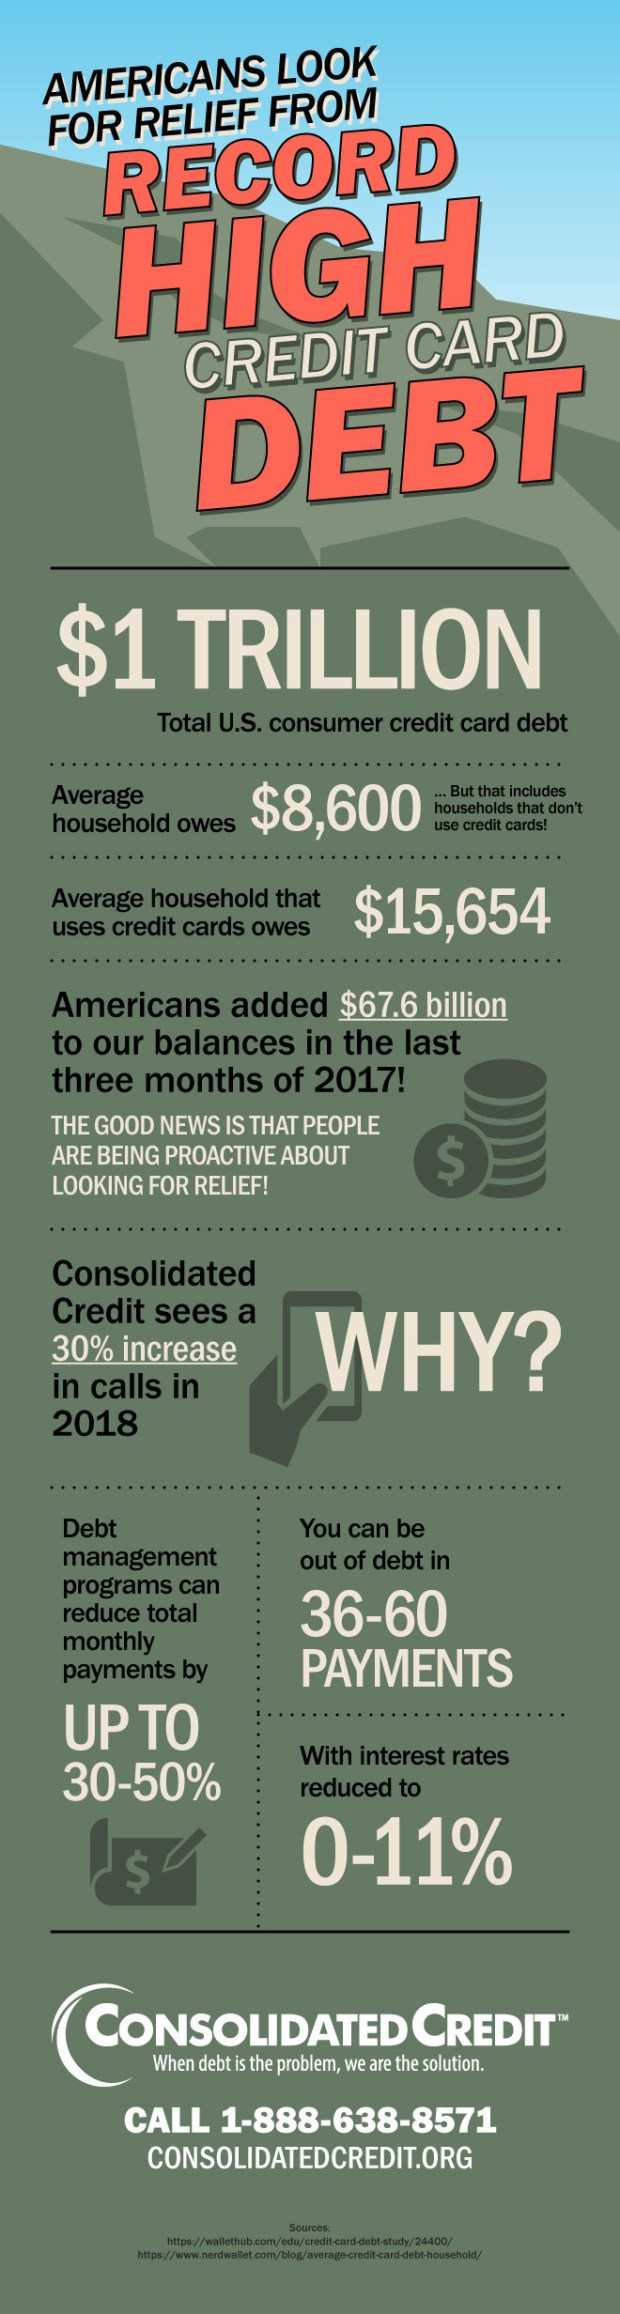 Consolidated Credit RecordHighDebt Infographic